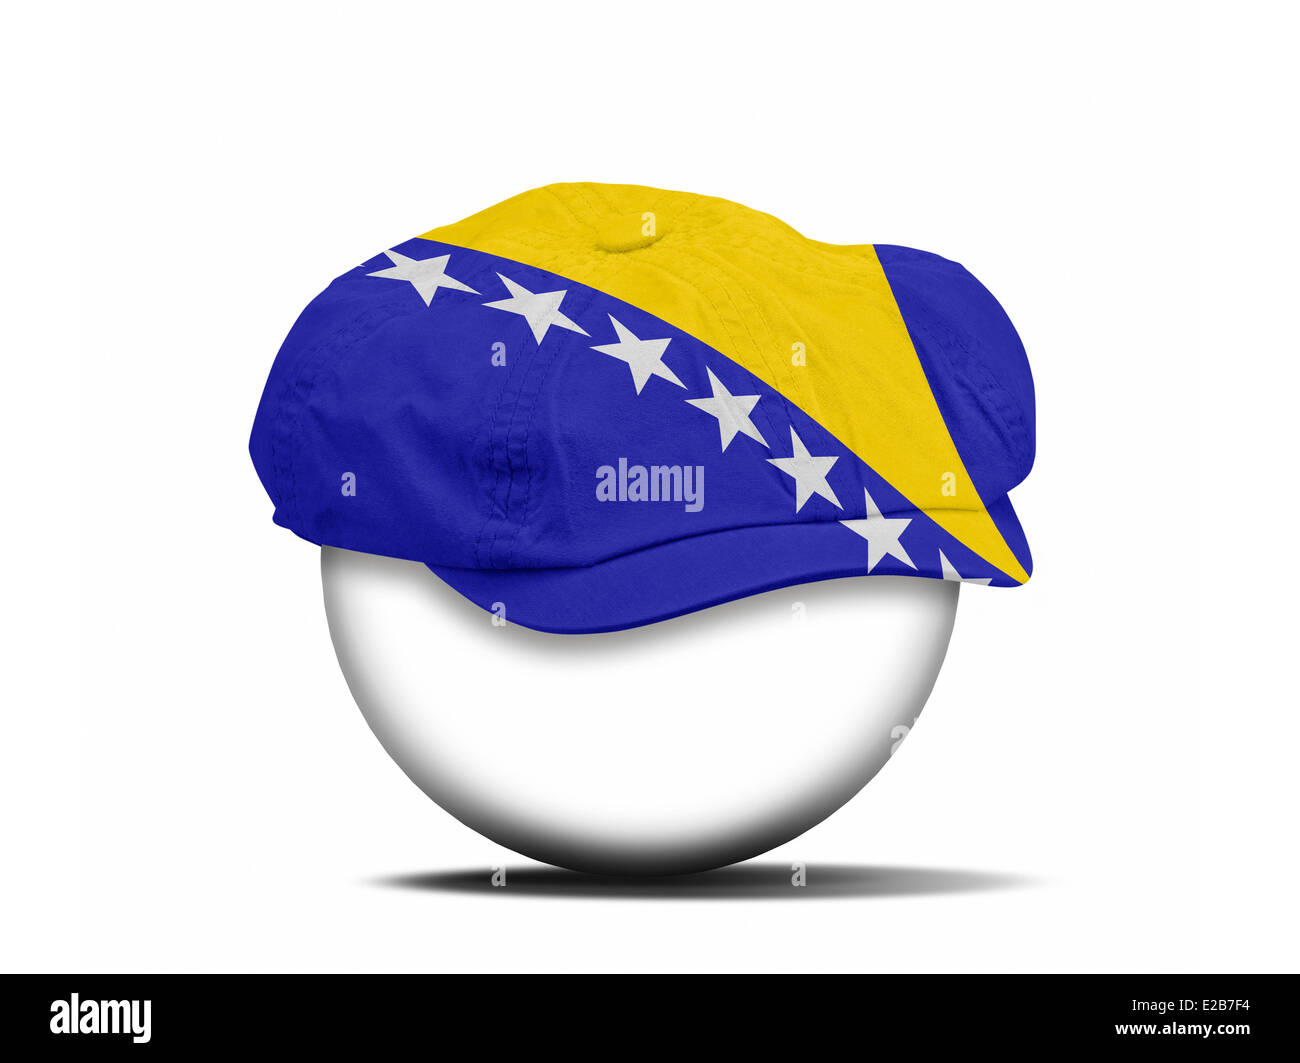 fashion hat on white with the flag of Bosnia Herzegovina - clipping path for the hat - Stock Image